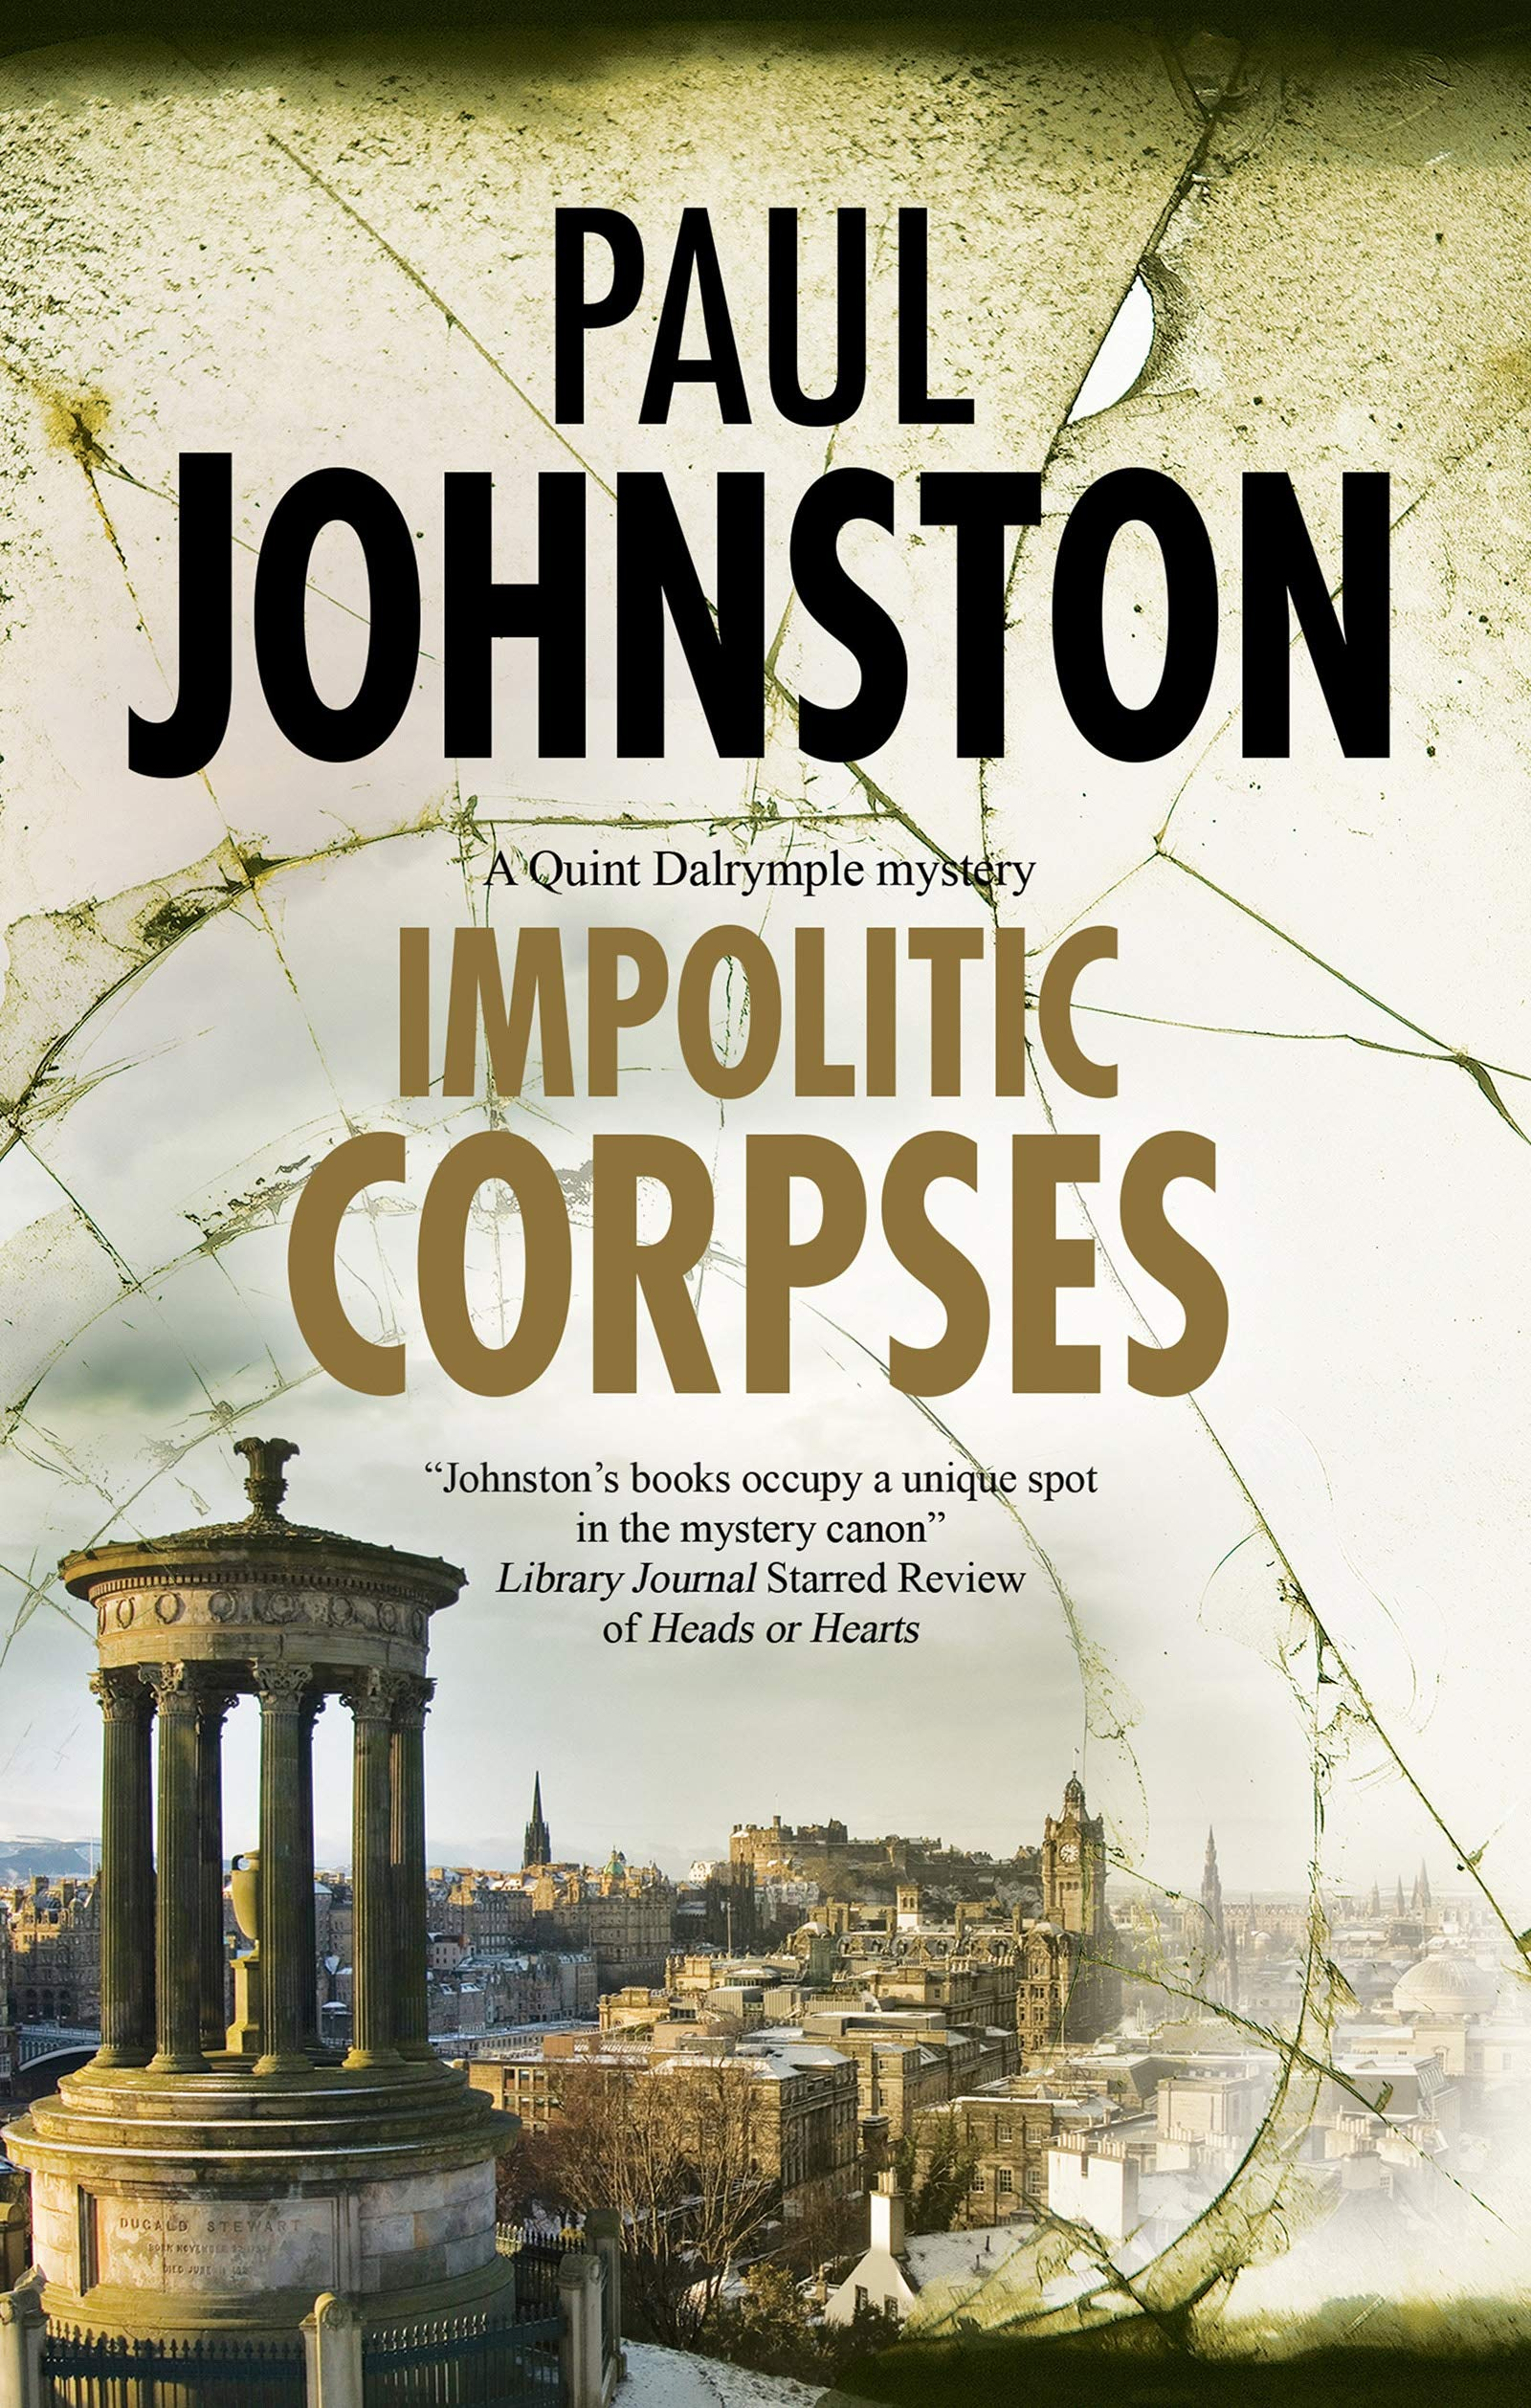 Impolitic Corpses by Paul Johnston (2019)